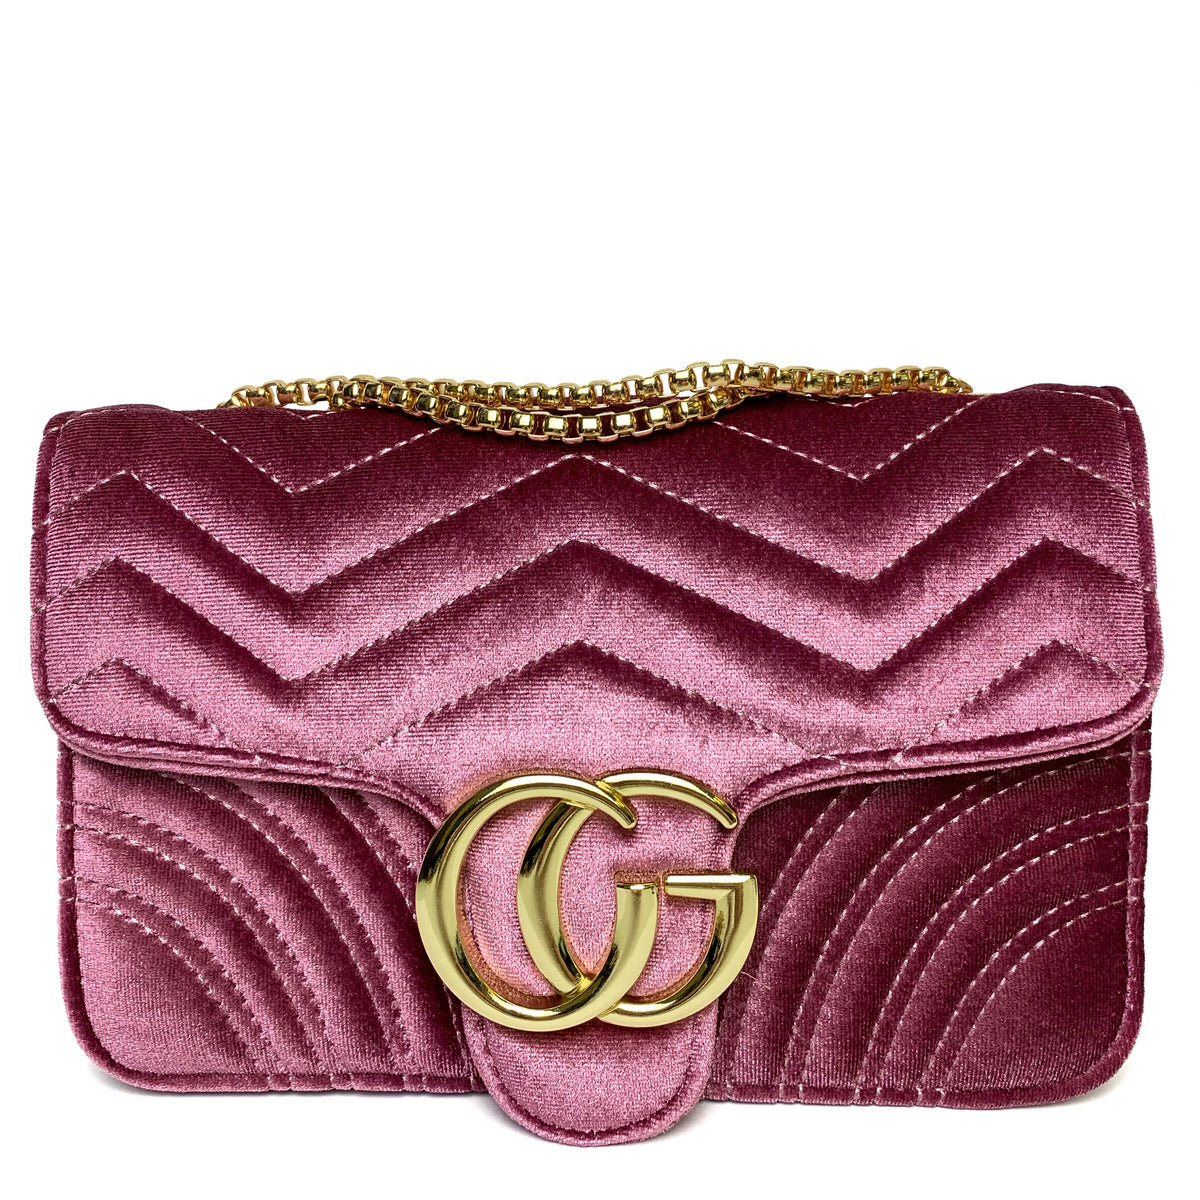 ca0e265a7e2d Talia Crossbody Gucci Inspired Marmont Bag - Velvet Pink – Style Of Beyond